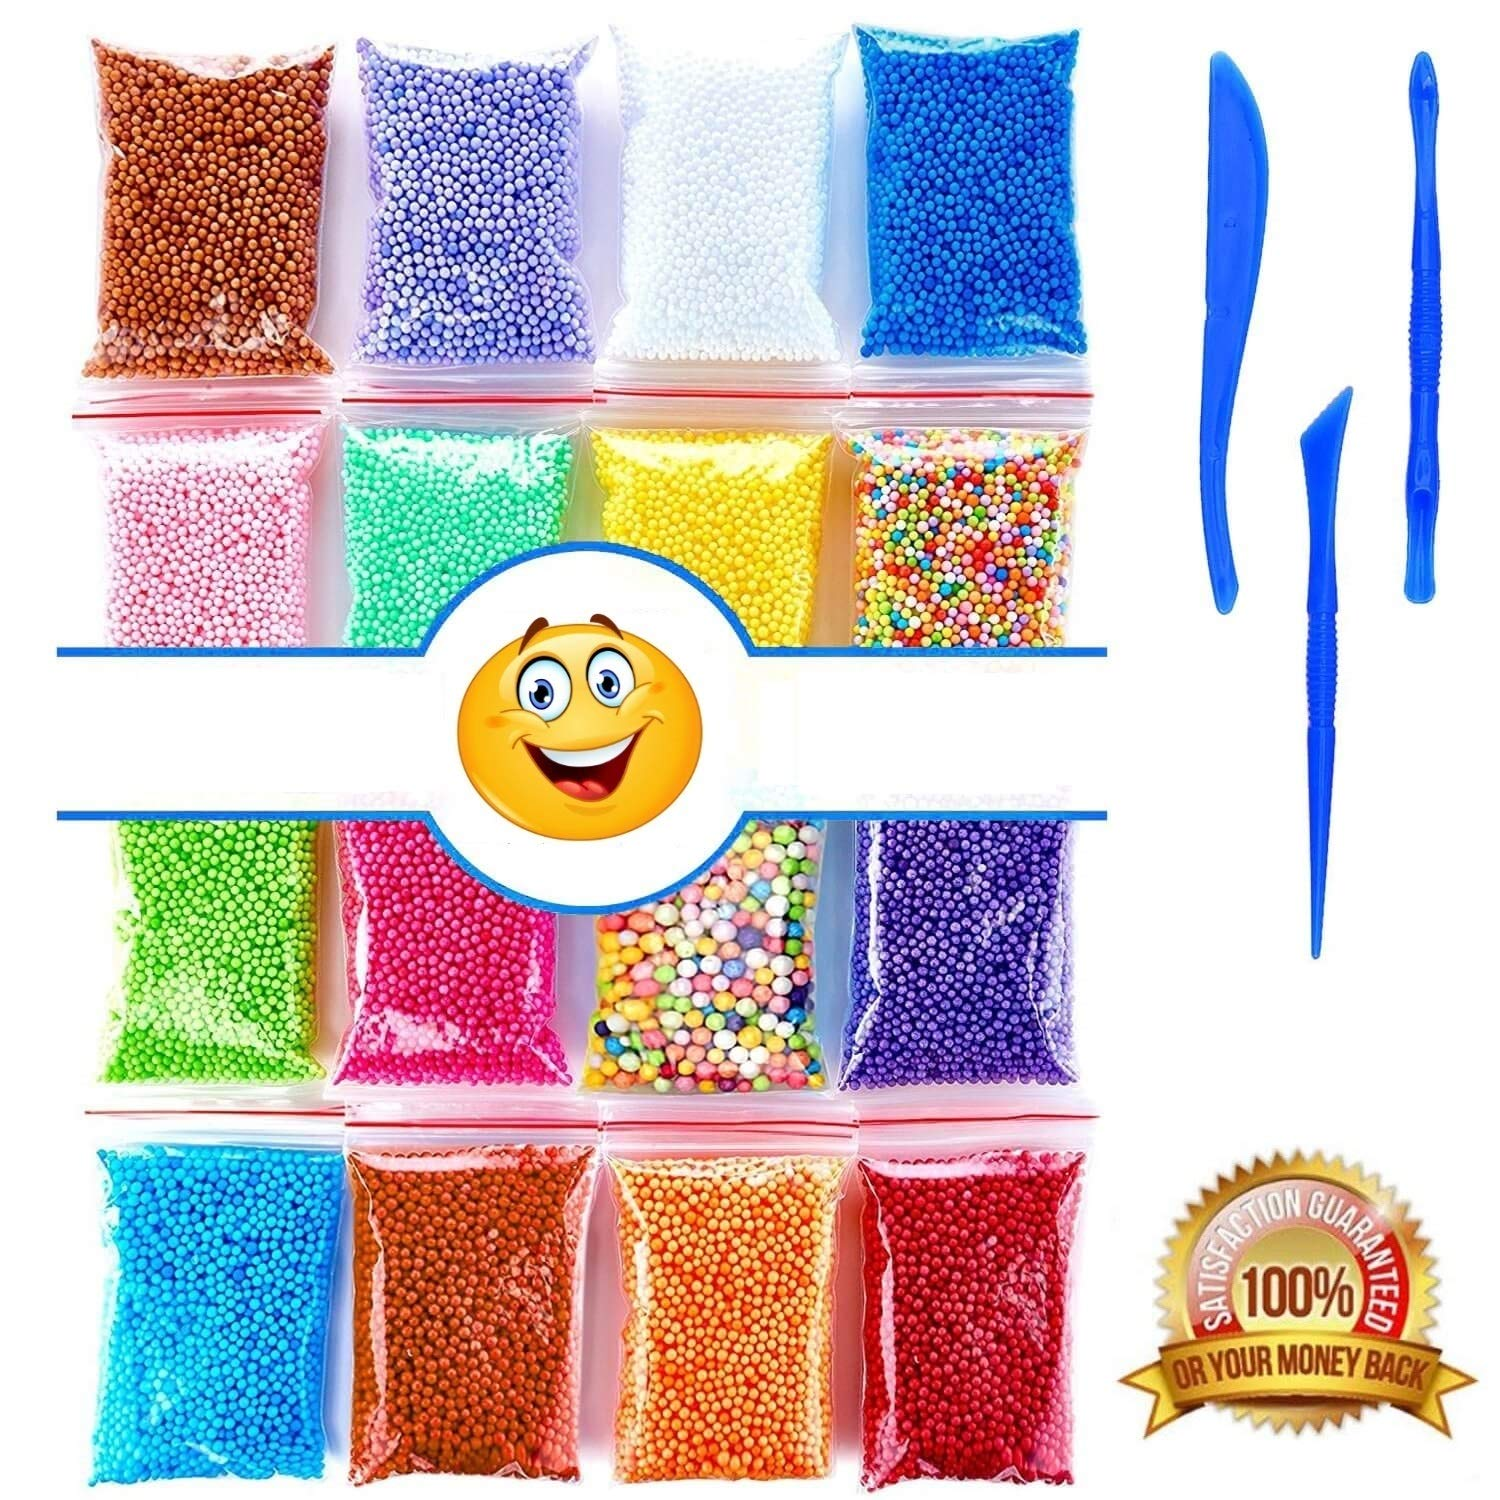 Foam Beads for Slime | Micro Floam Beads 16 Pack | Craft Foam Beads for Soft Clay | Colorful Micro Foam Beads Balls for DIY Slime | 16 Bags (80000) Foam Balls and 3 Slime Tools | Newest 2018 | I-BARS 4336848766